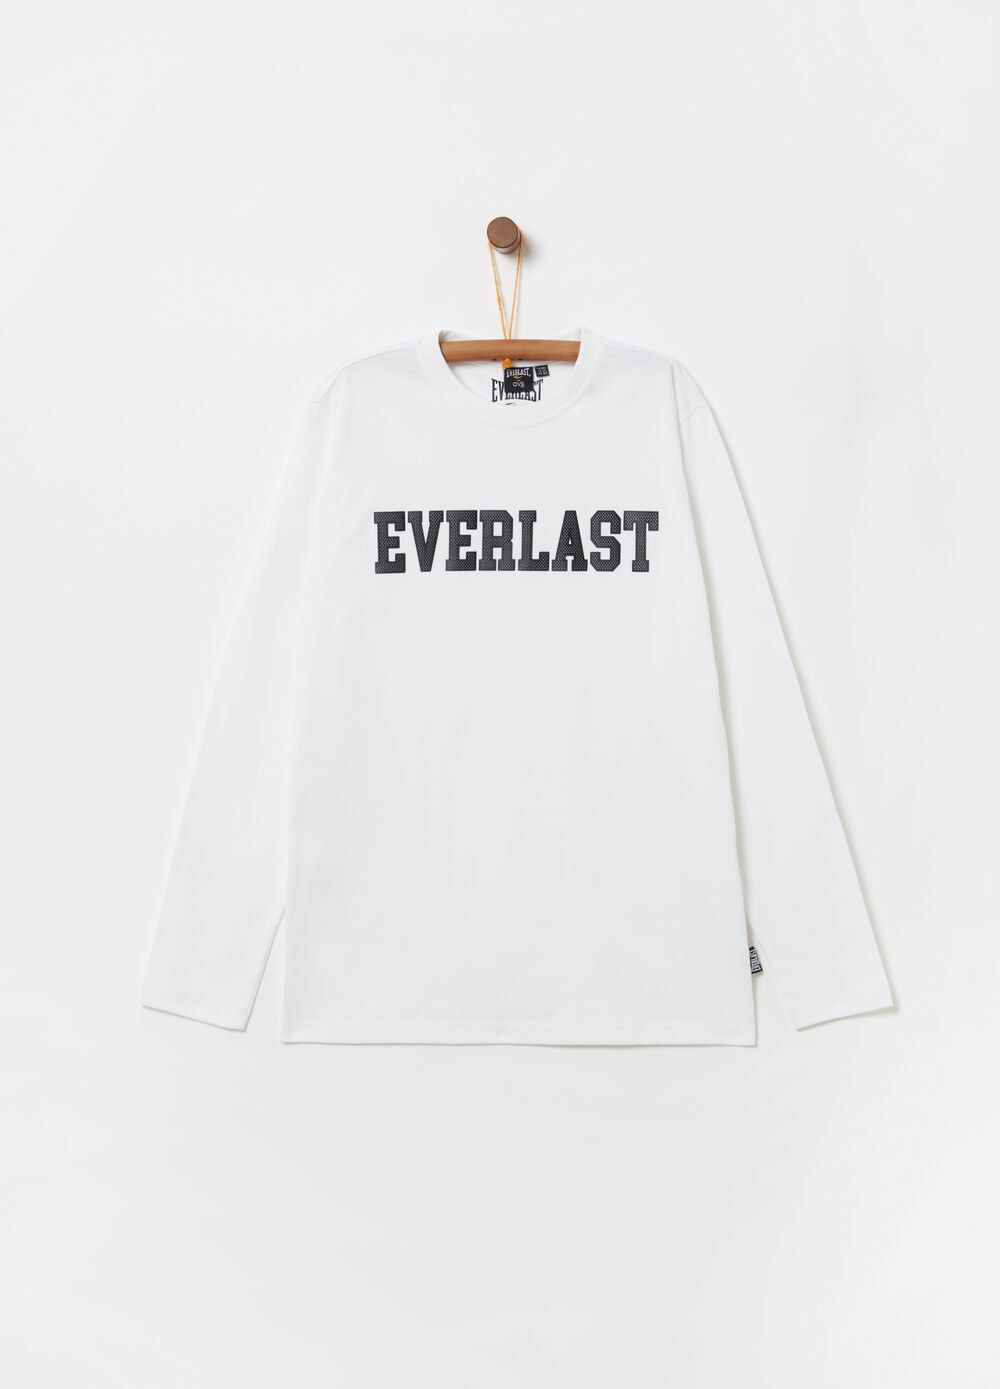 Camiseta con mangas largas y estampado Everlast